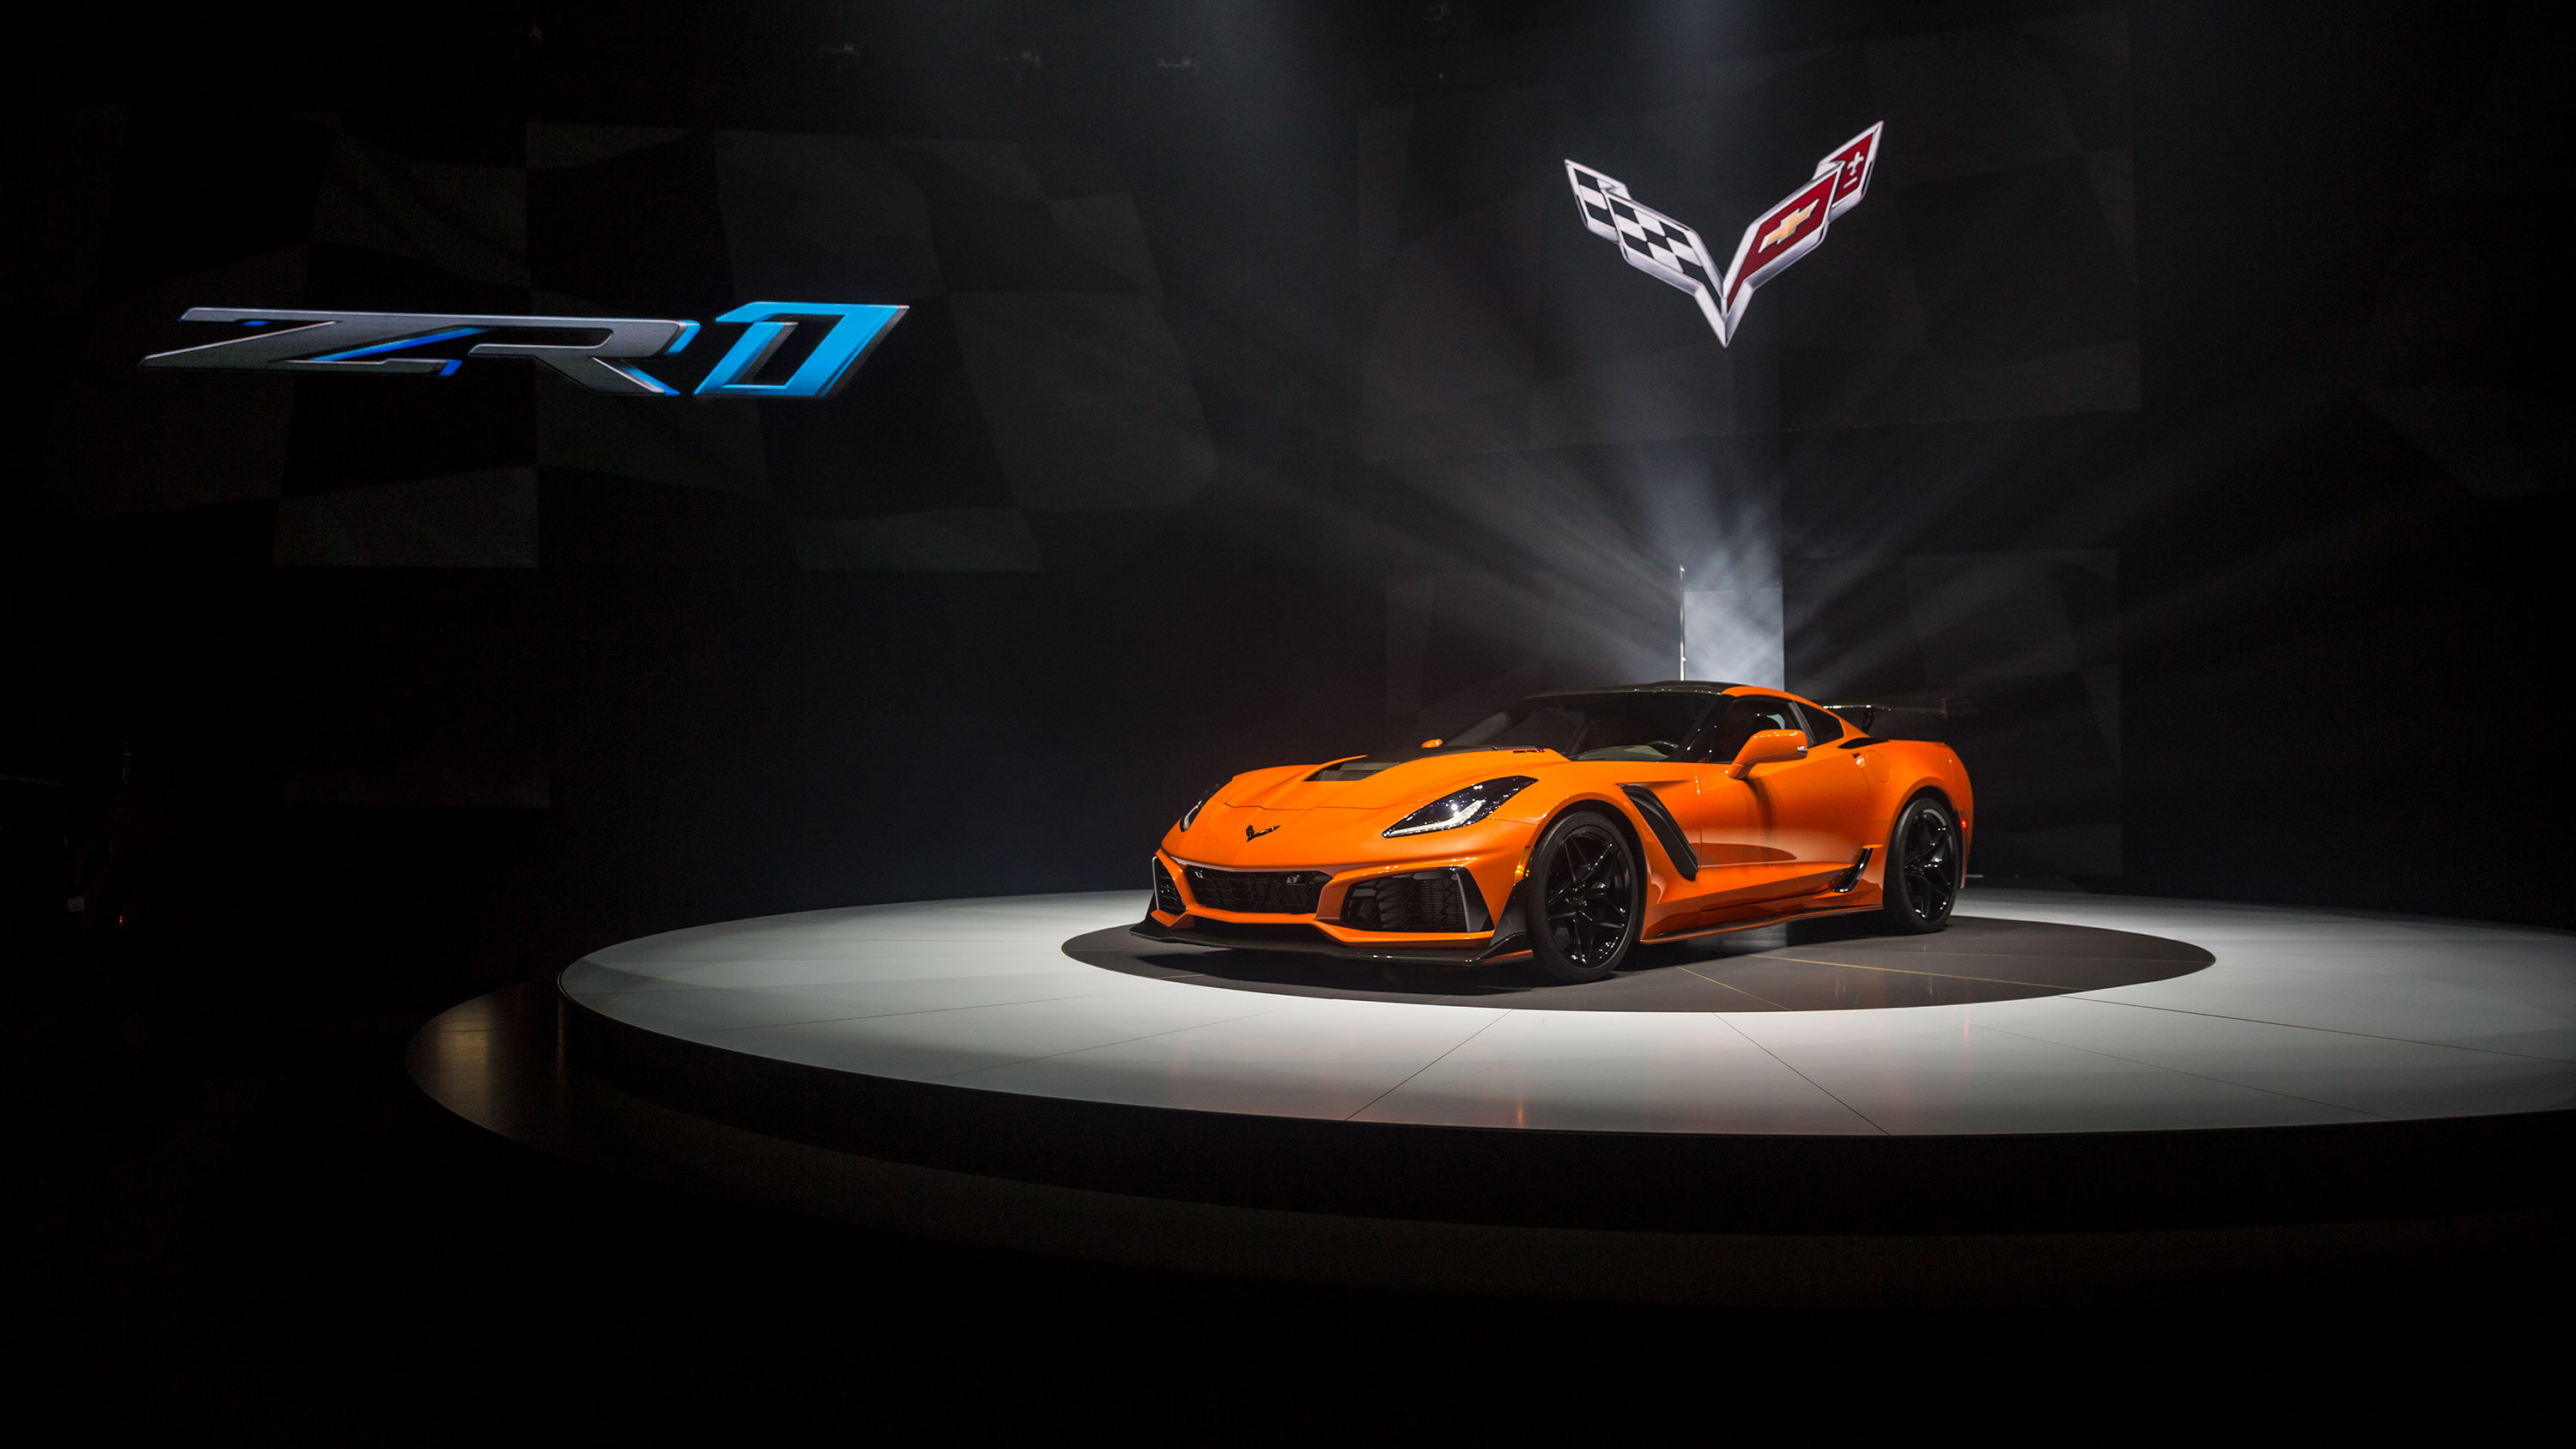 Corvette Zr1 Shines Even Brighter With The Sebring Orange